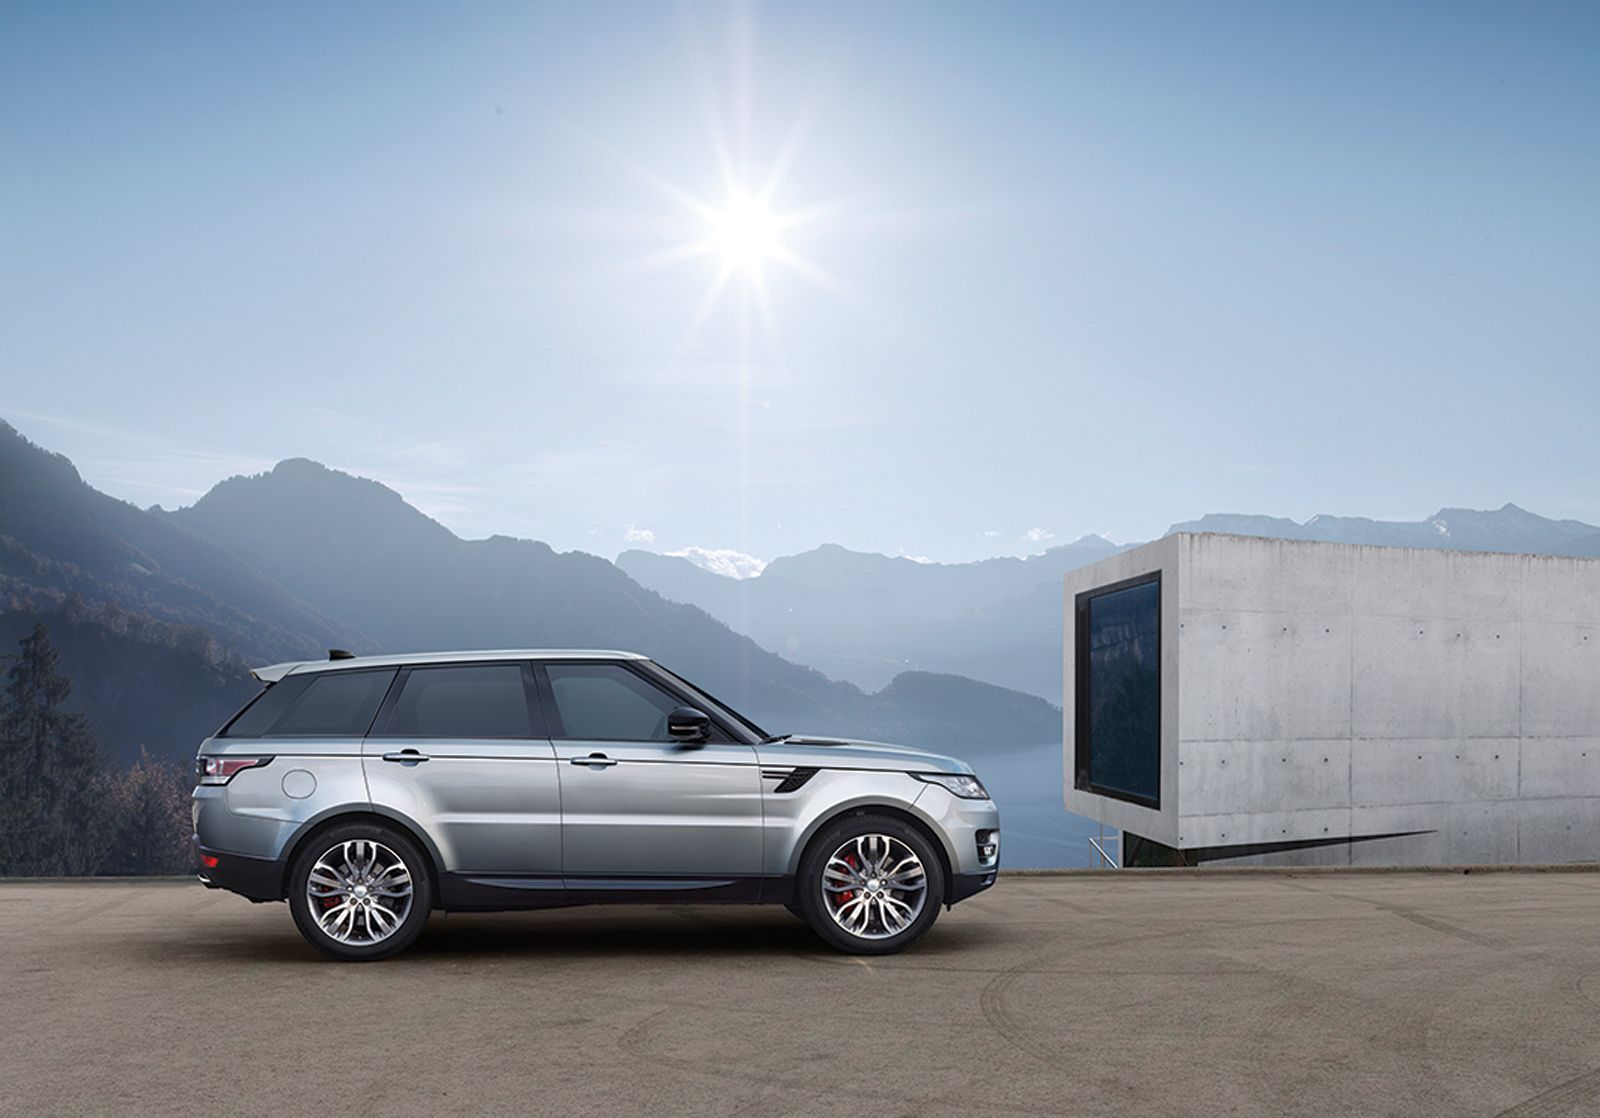 2017 Range Rover Sport Arrives In The US Priced From